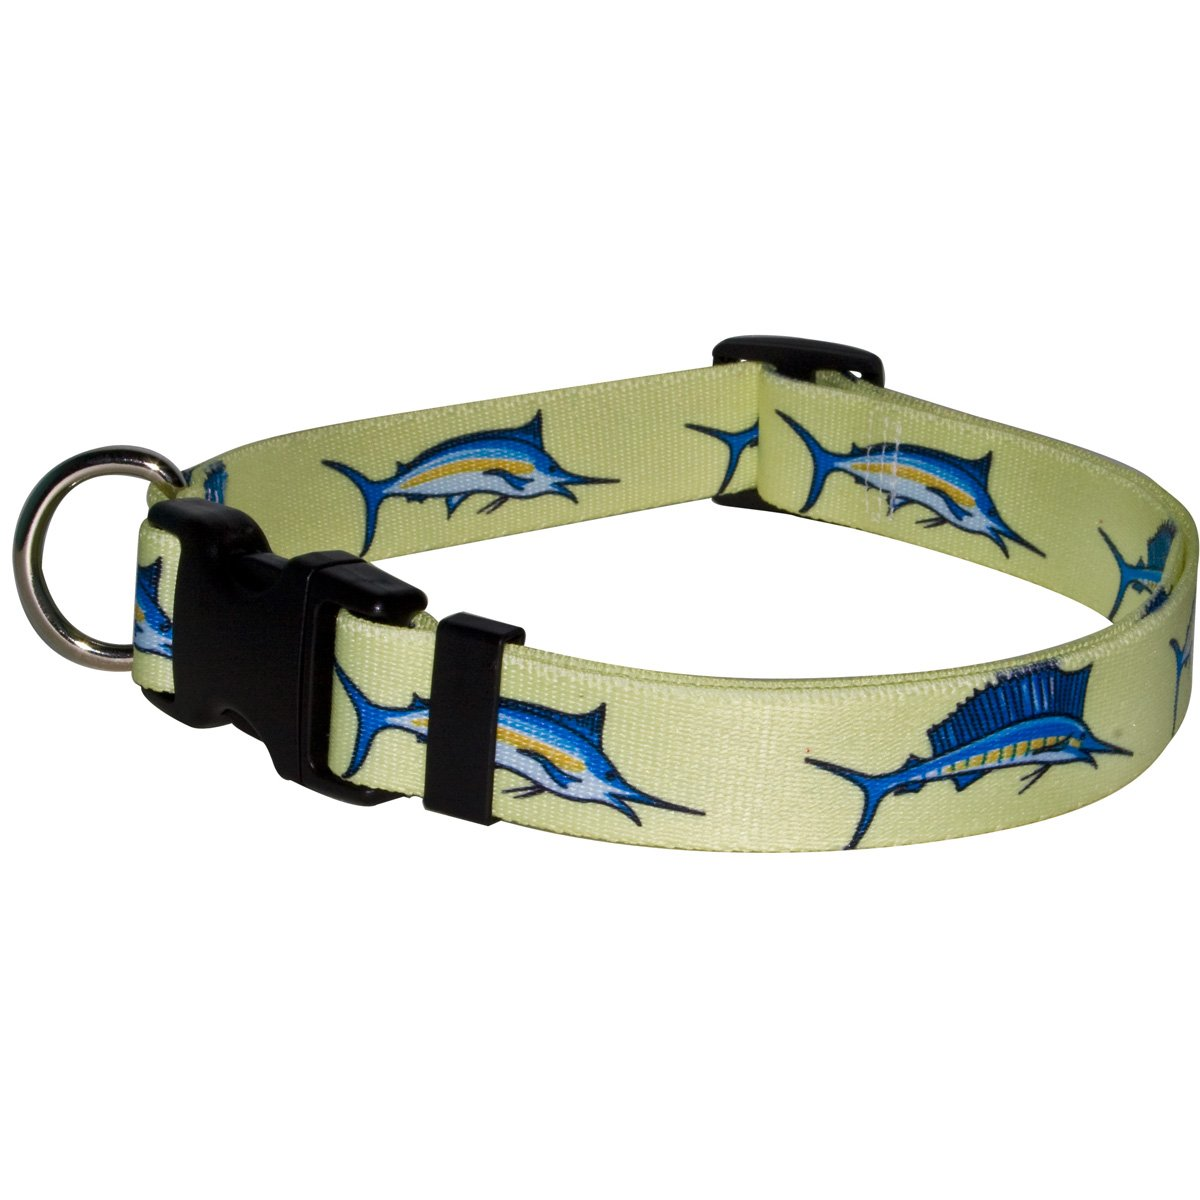 Yellow Dog Design Bill Fish Dog Collar Fits Neck 14 to 20''/4'' Wide, Medium 3/4'' Wide